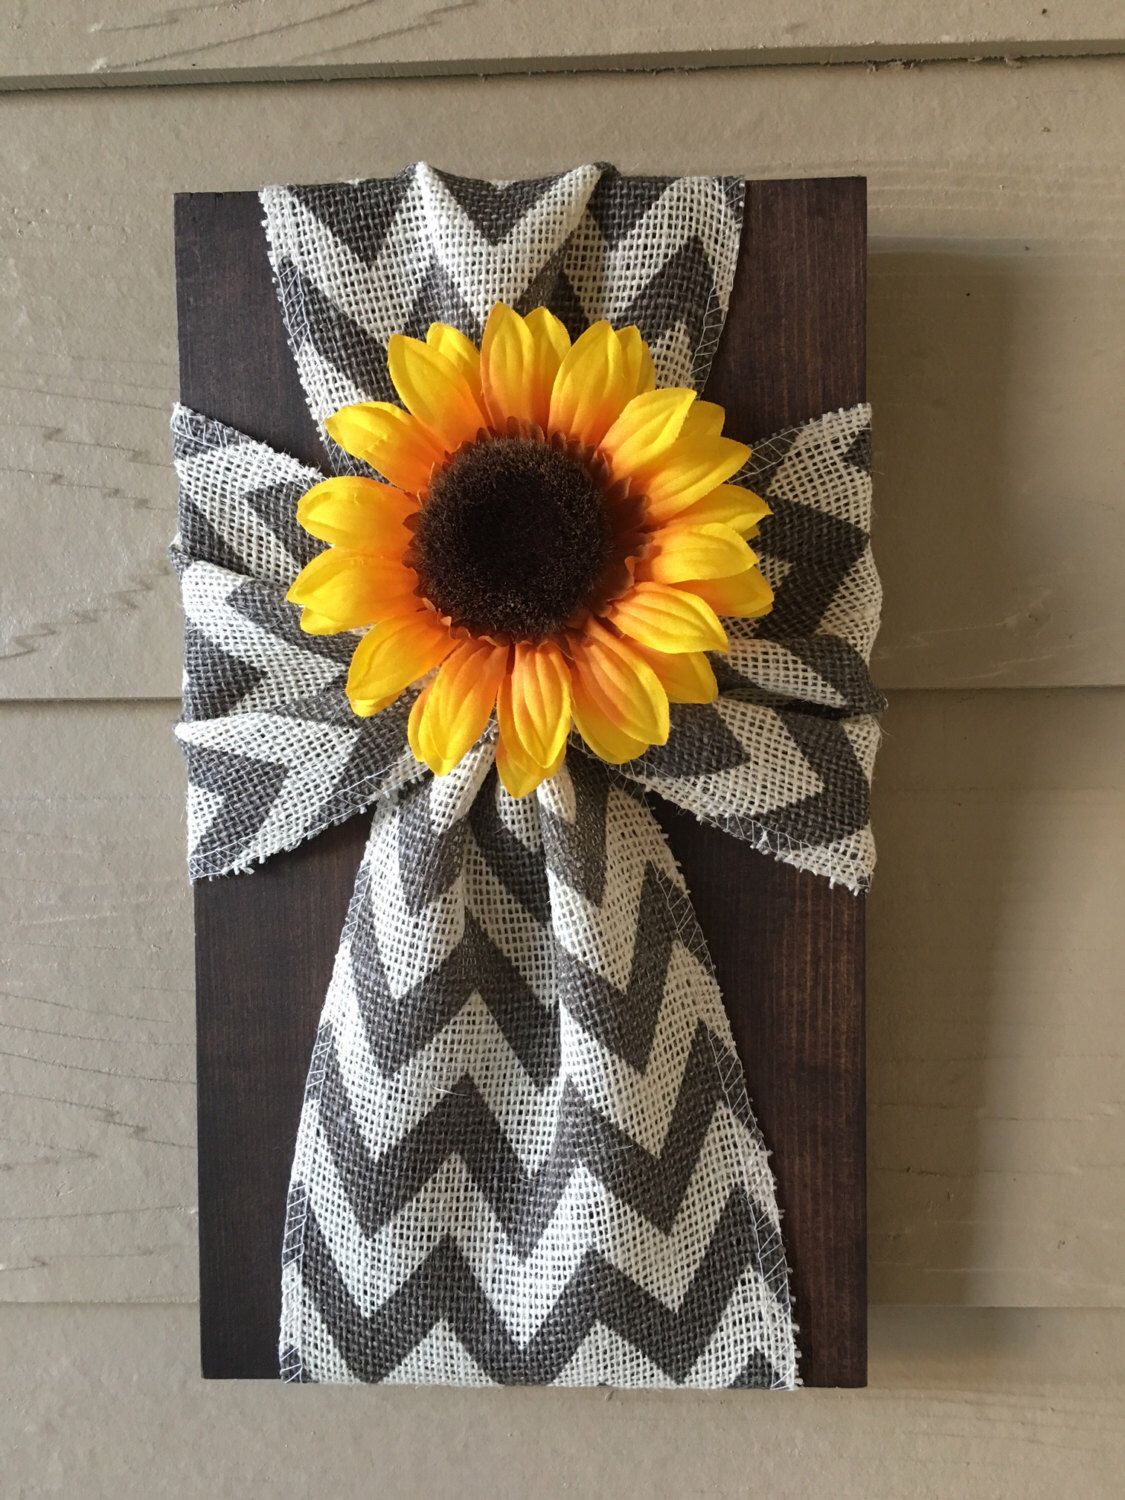 Sunflower Room Decor Wall Art